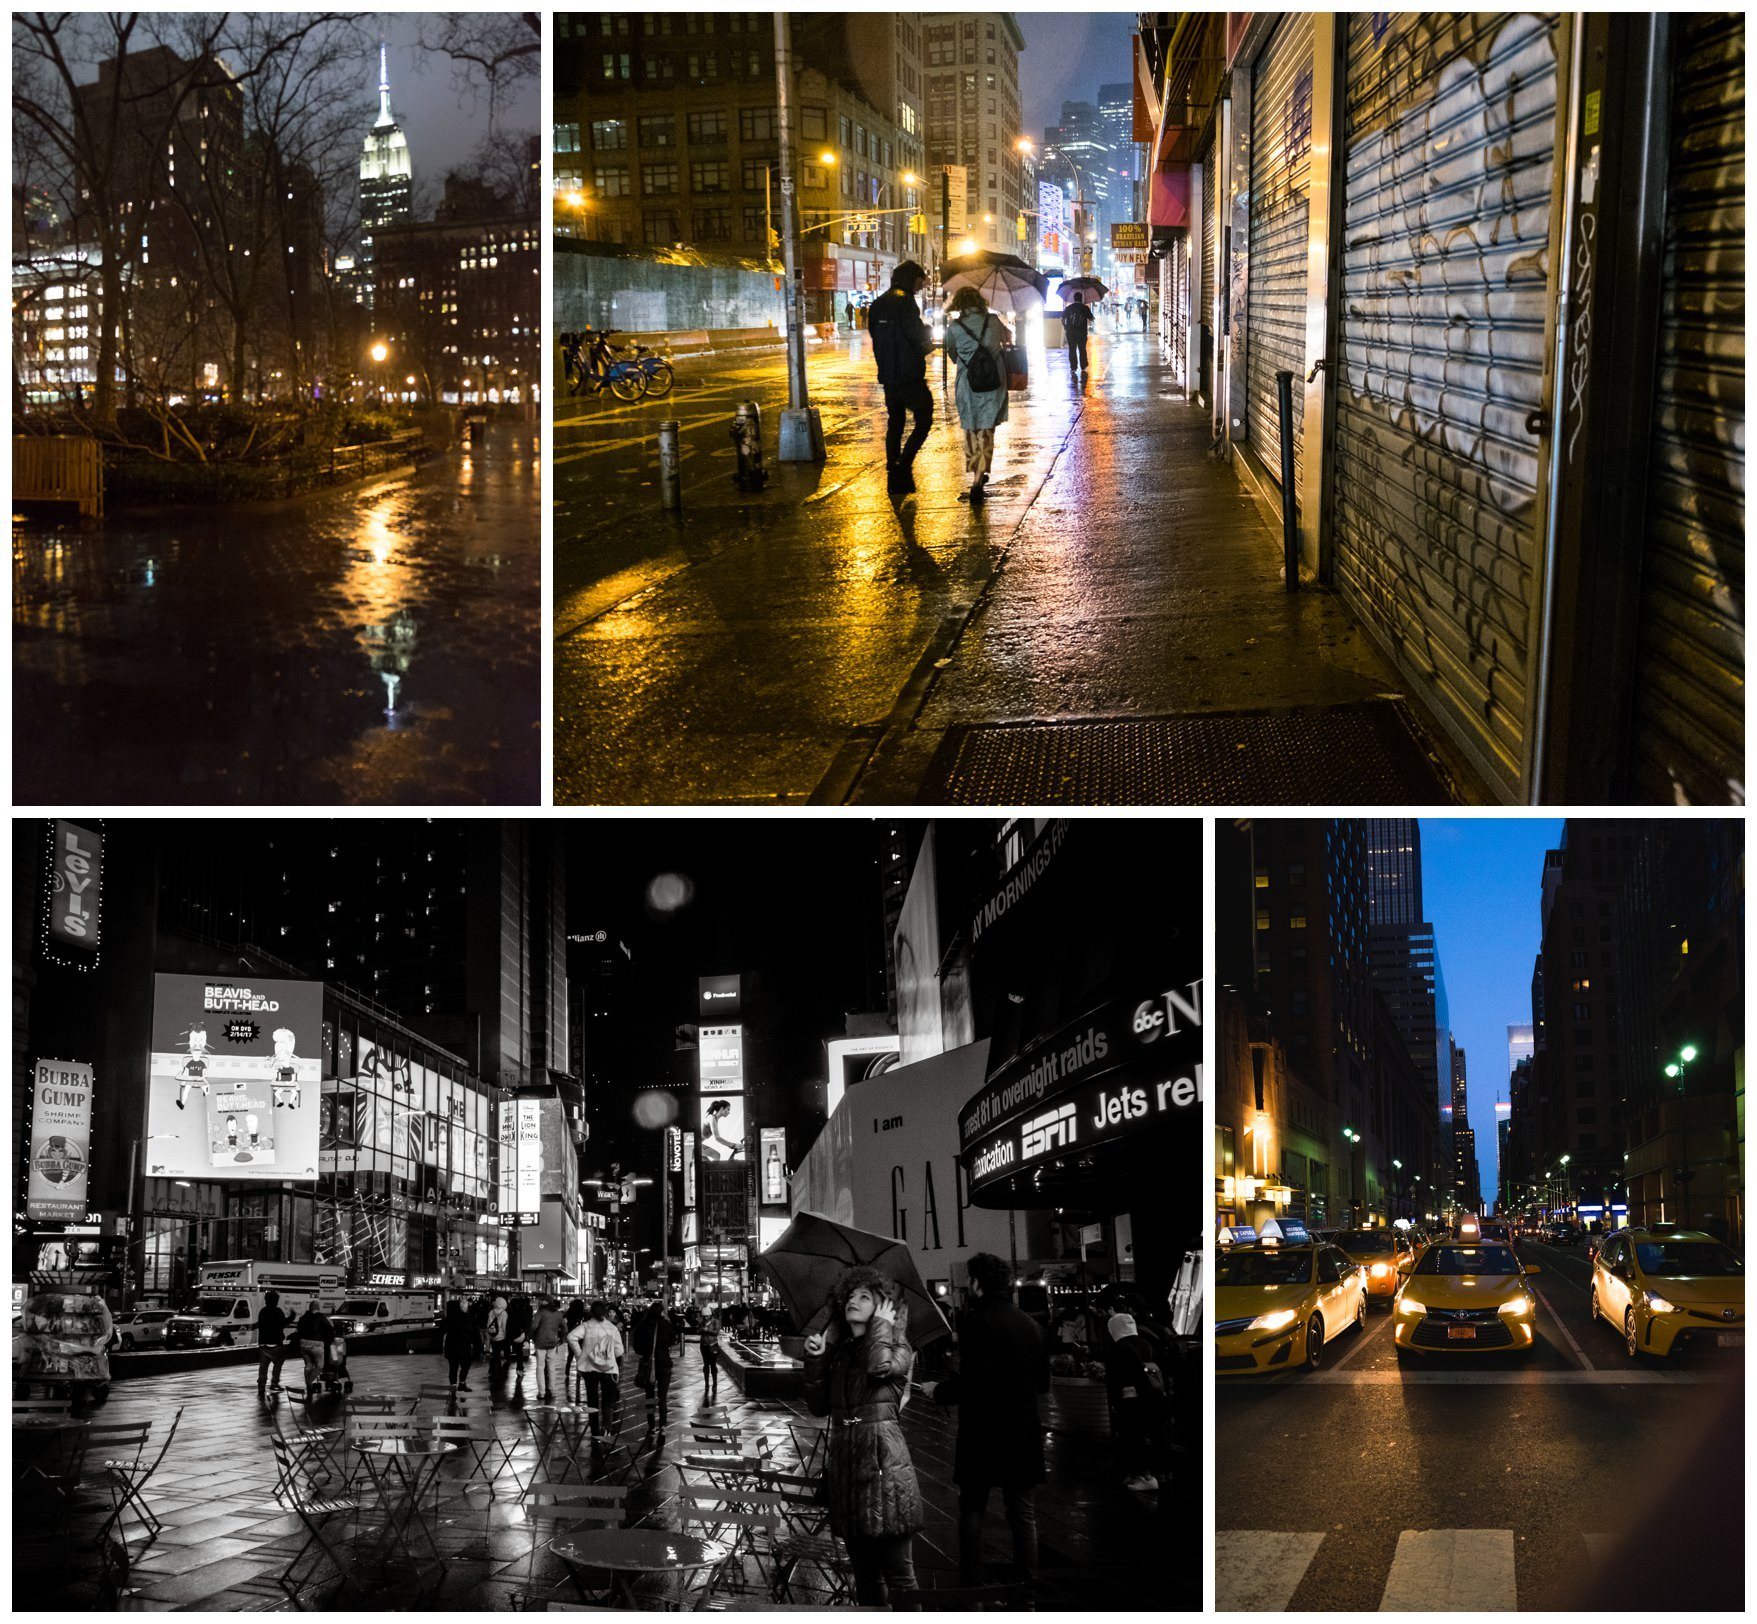 New York city at night with the reflections and colour of the buildings in the puddles